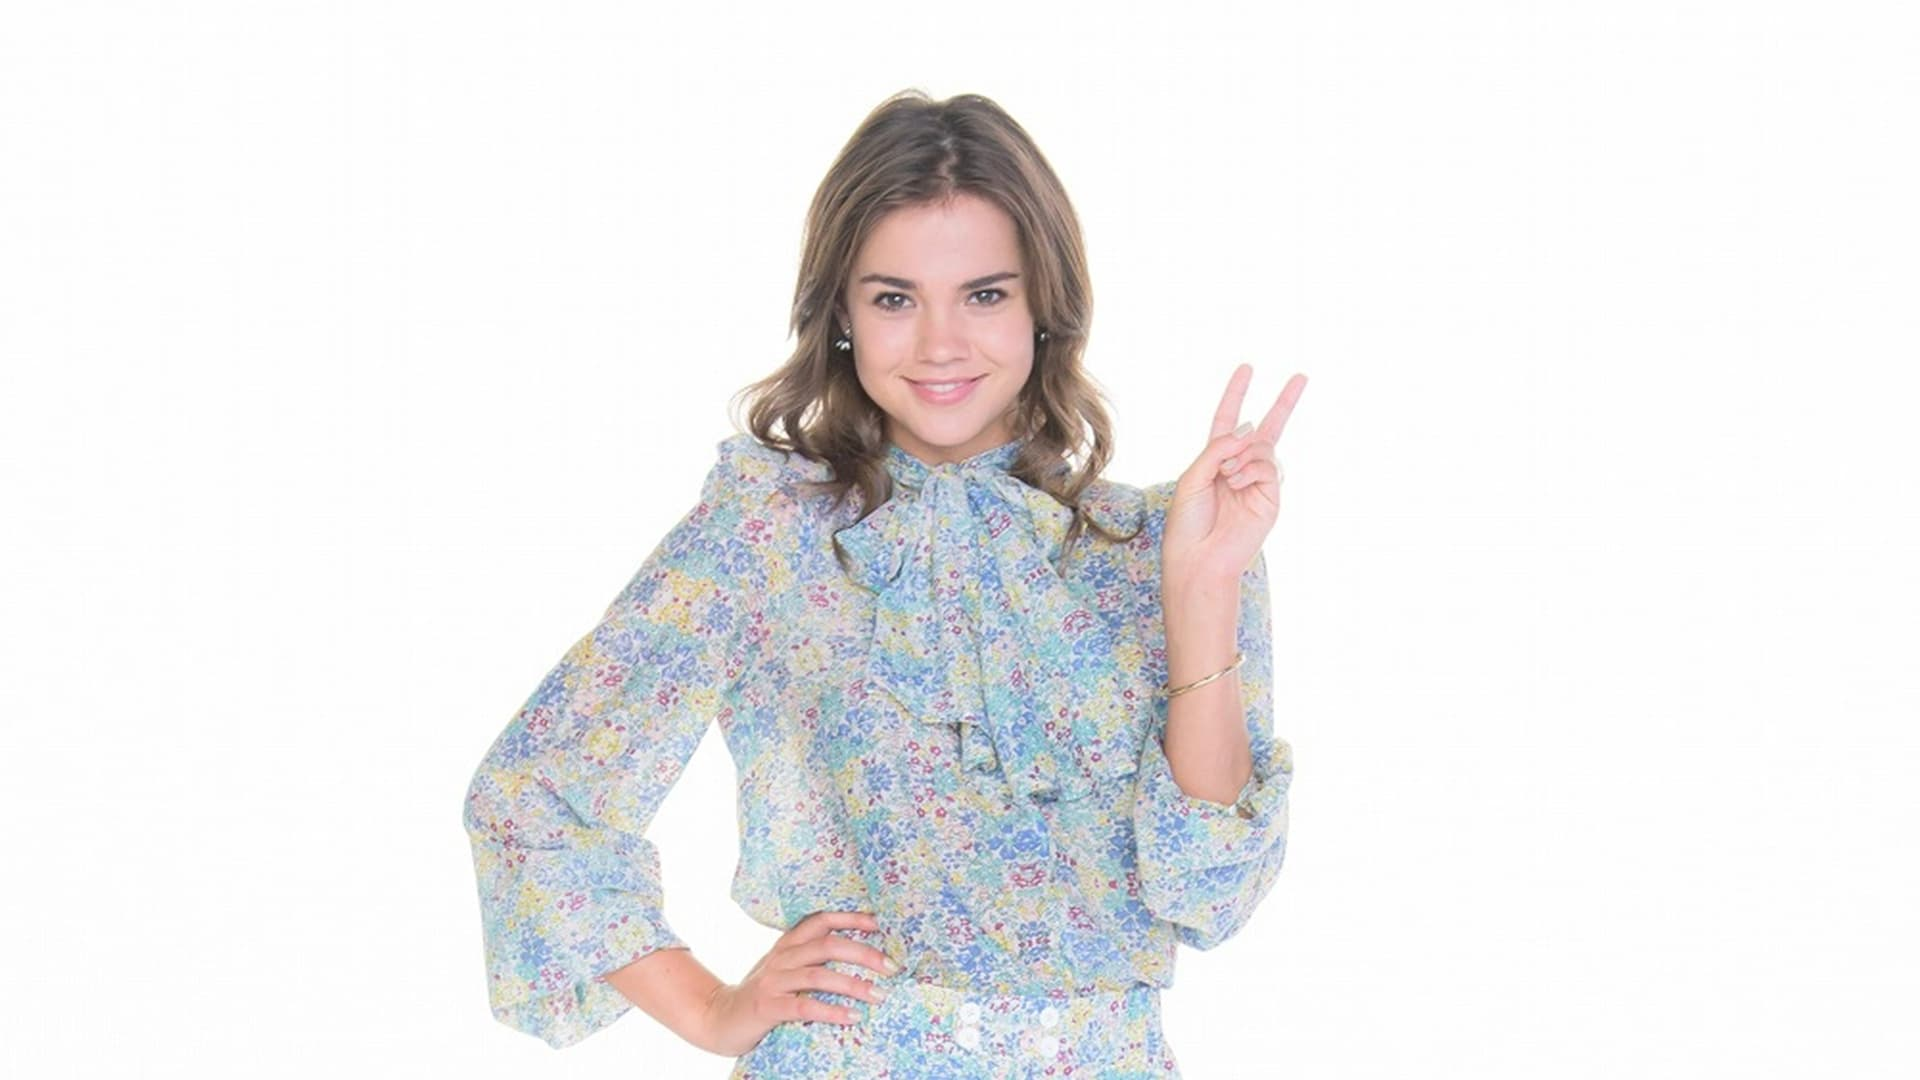 Maia Mitchell 4k picture